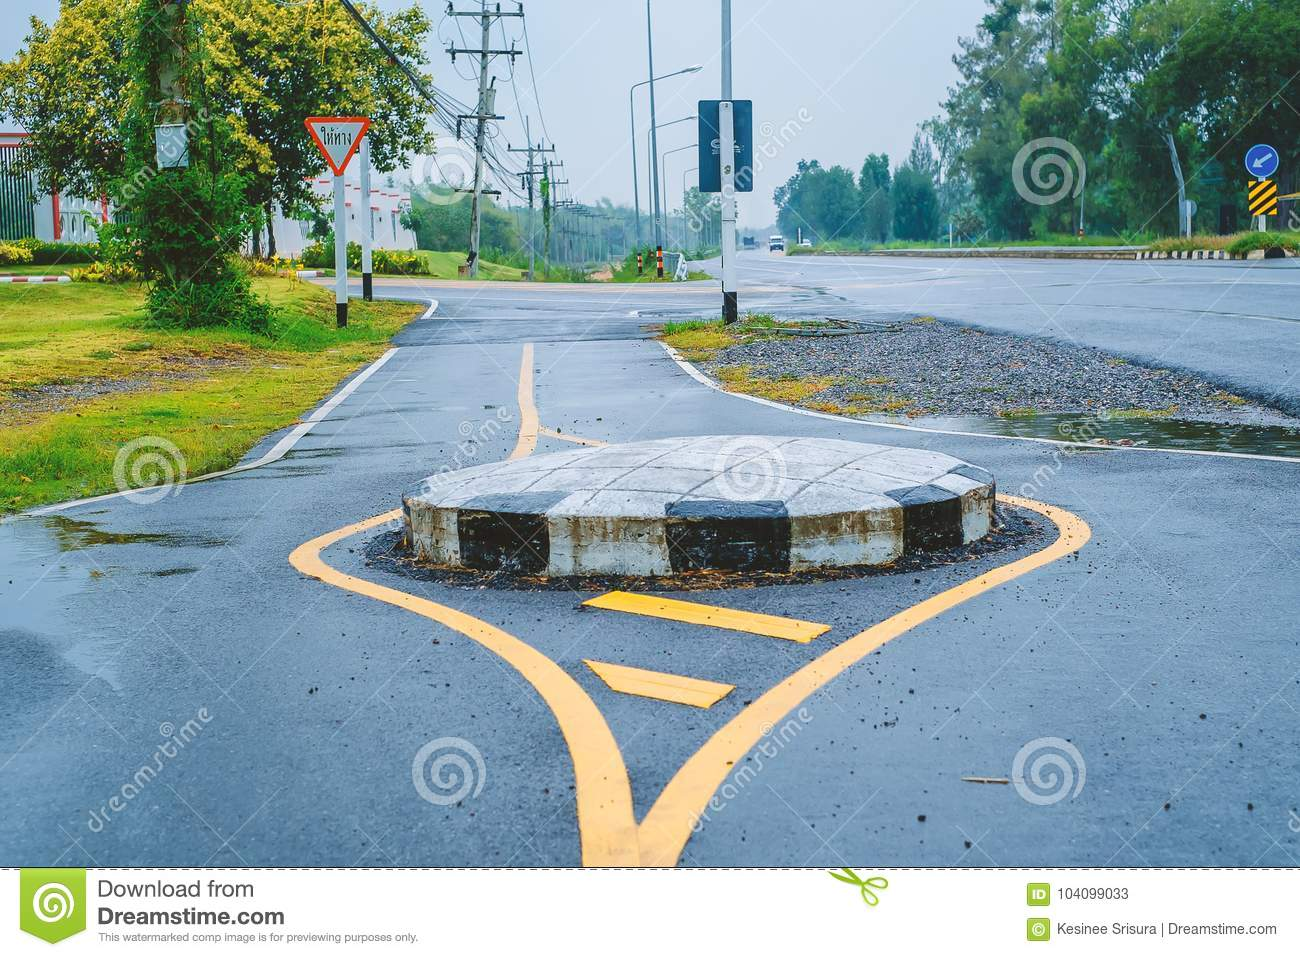 Traffic Circle On The Road, A Junction Which Traffic Moves